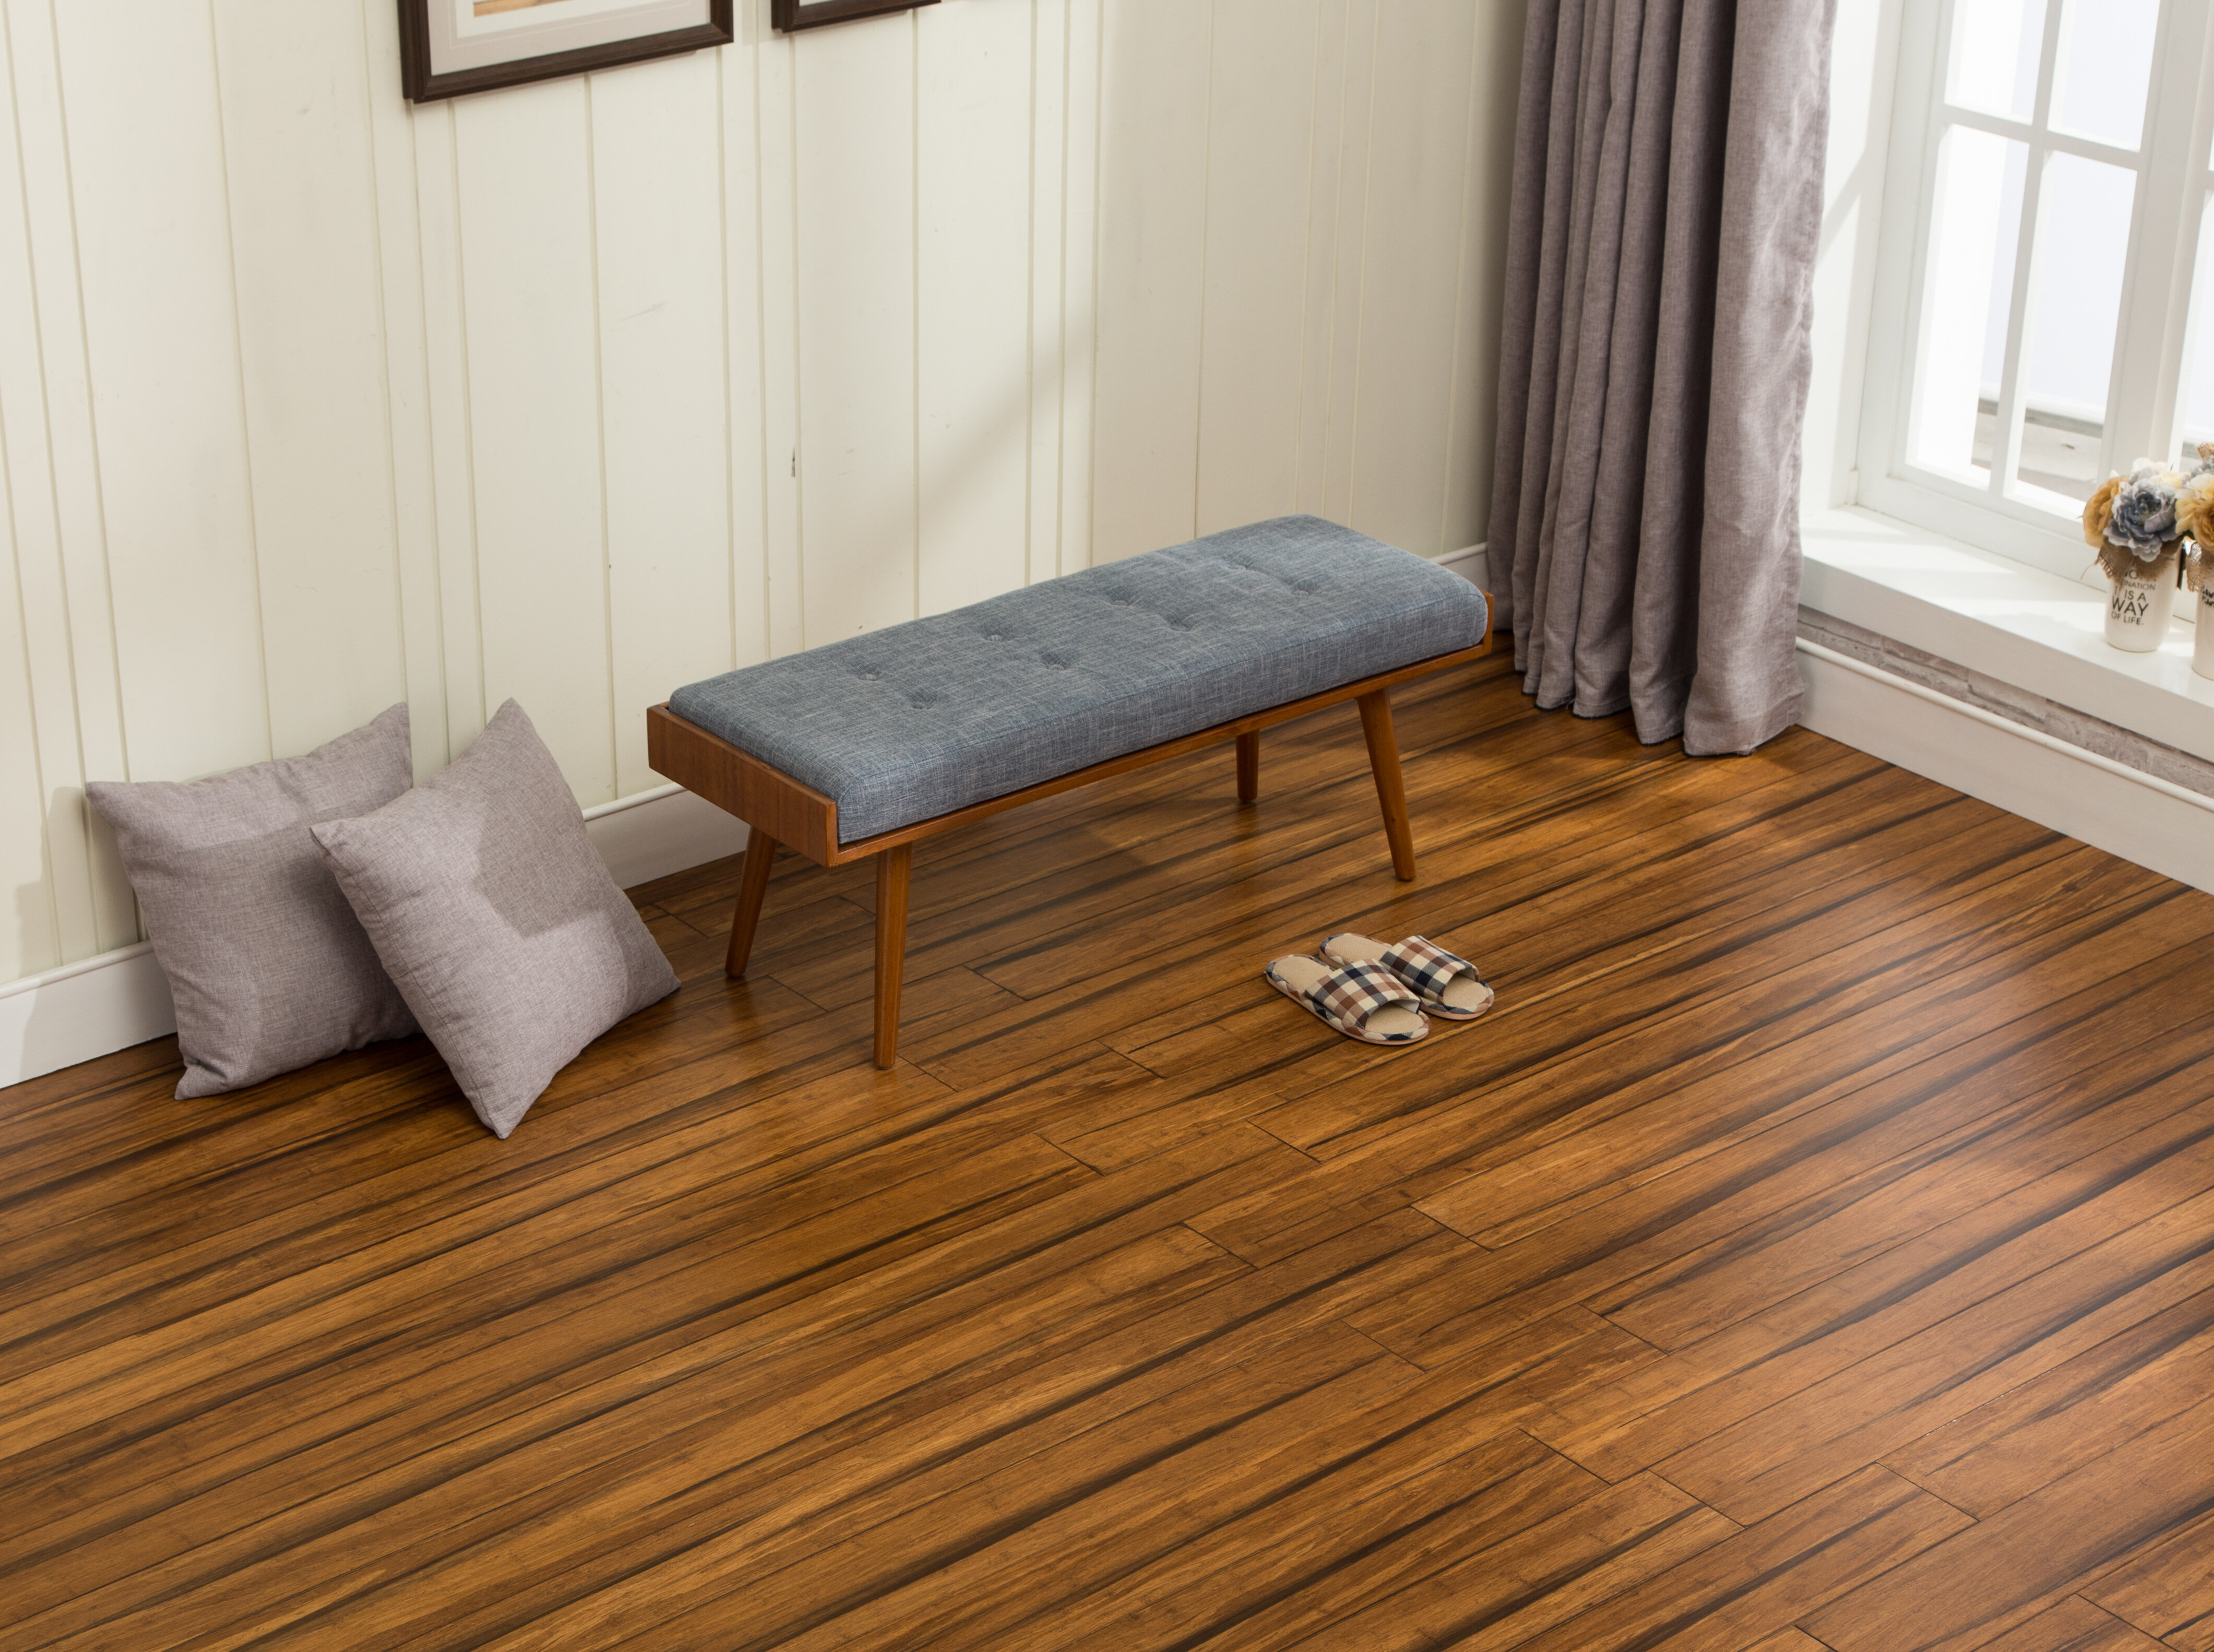 Ecofusion Flooring Bamboo 5 9 Thick X 5 2 3 Wide X 73 Length